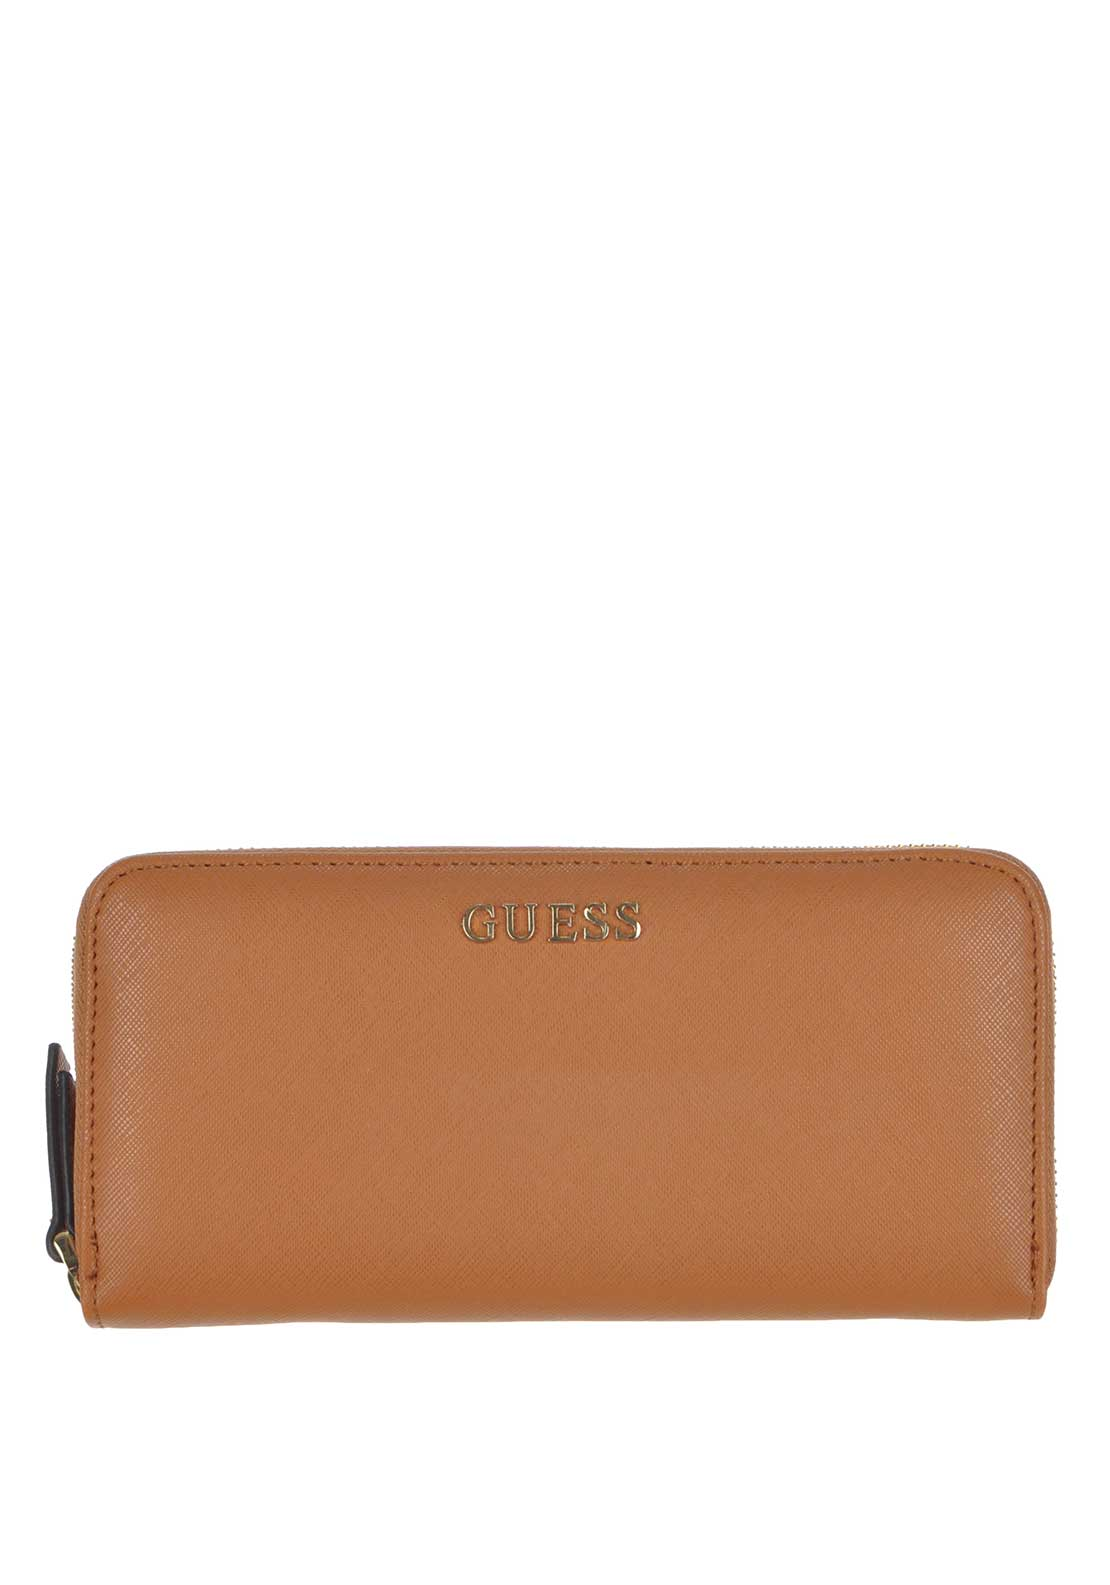 Guess Sissi Large Zip Around Wallet, Cognac